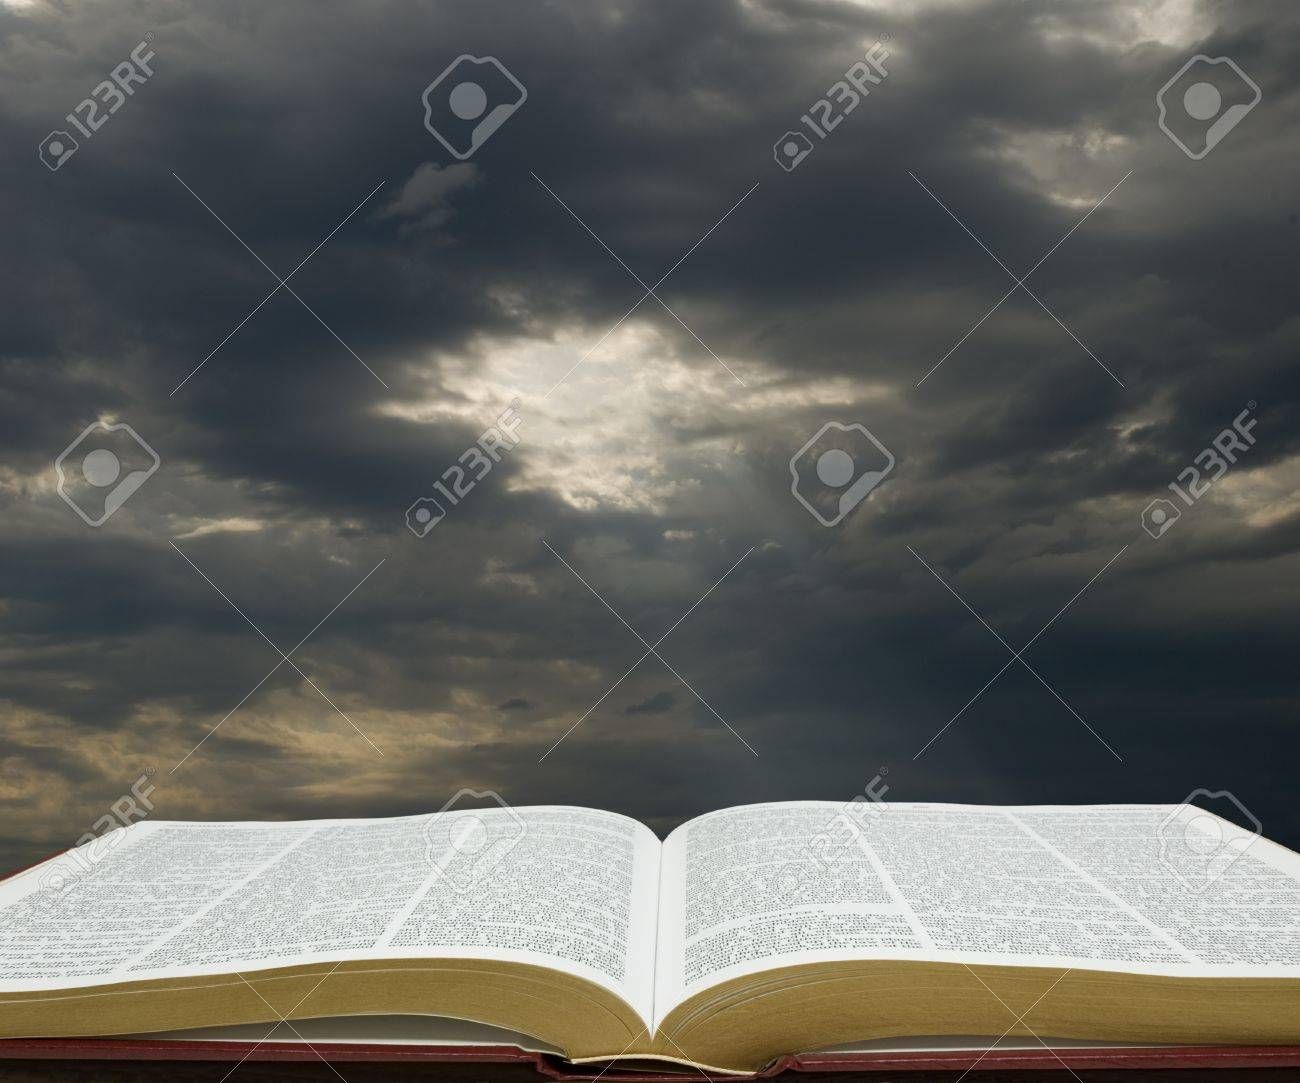 Bible open with dark sky in the background - 18354226